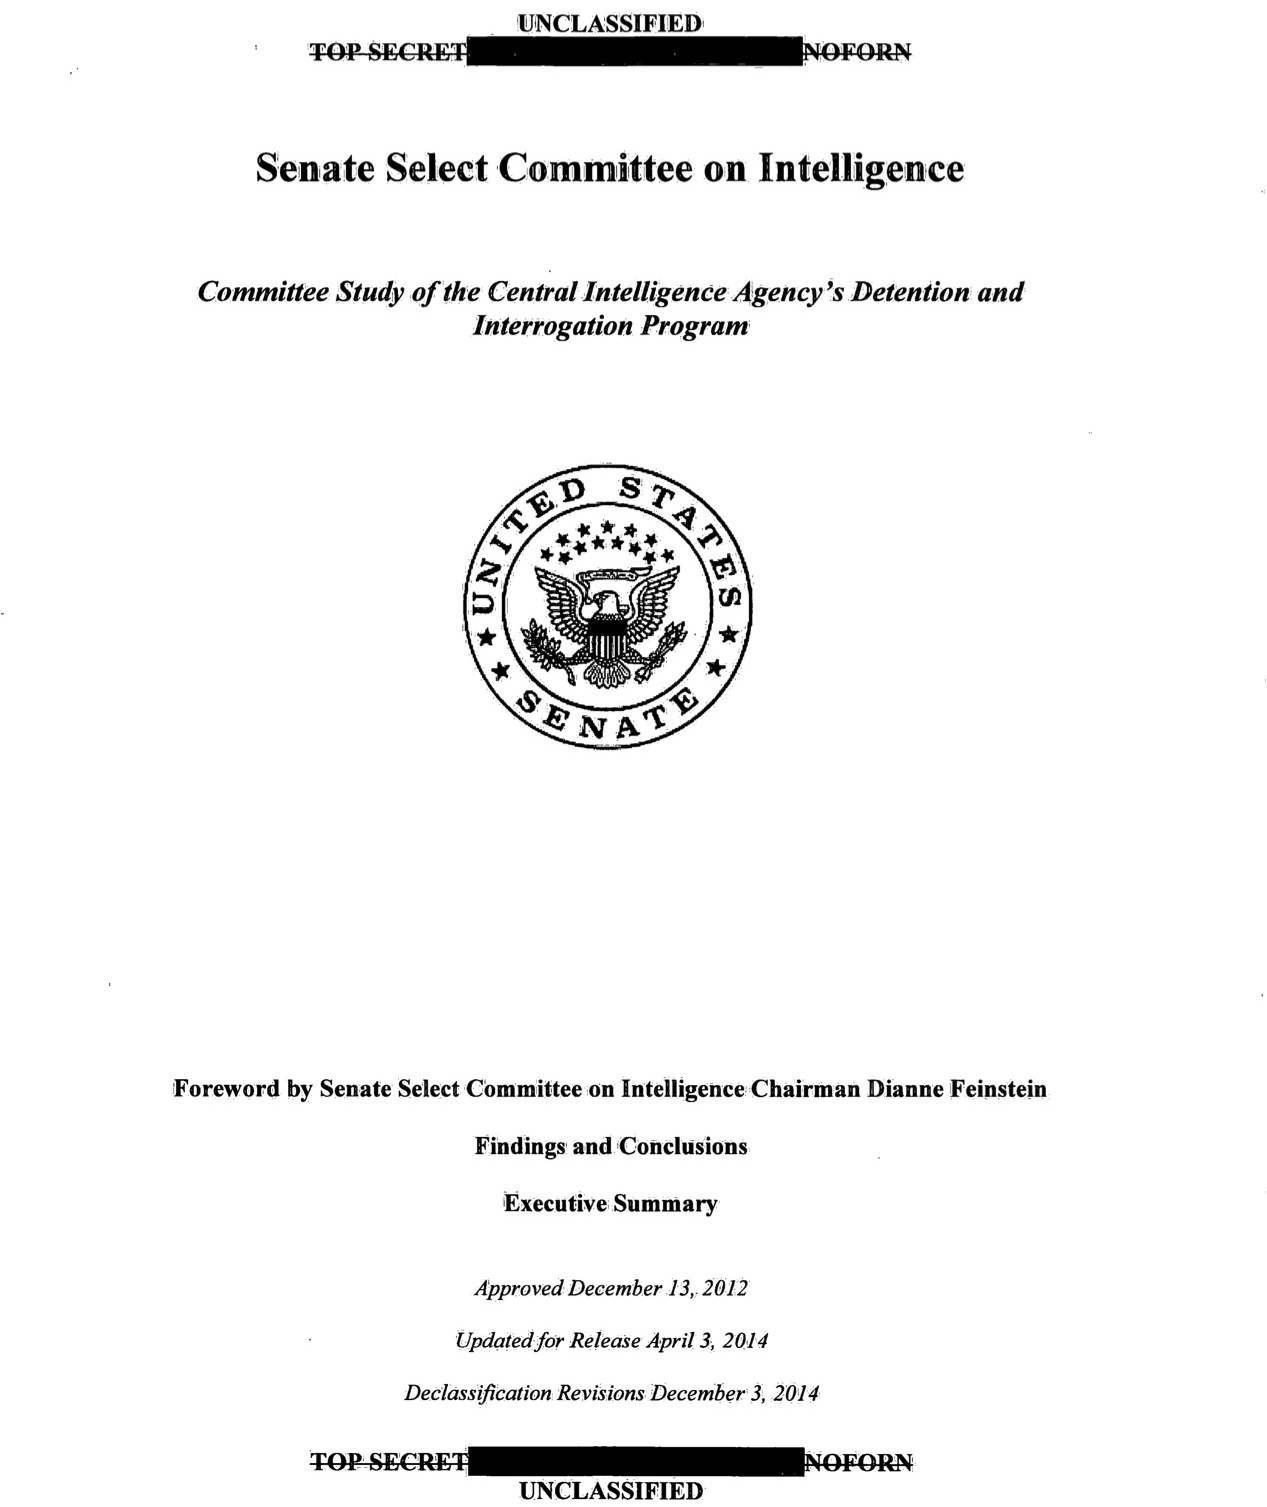 Steve Russell: The CIA torture report and federal Indian policies